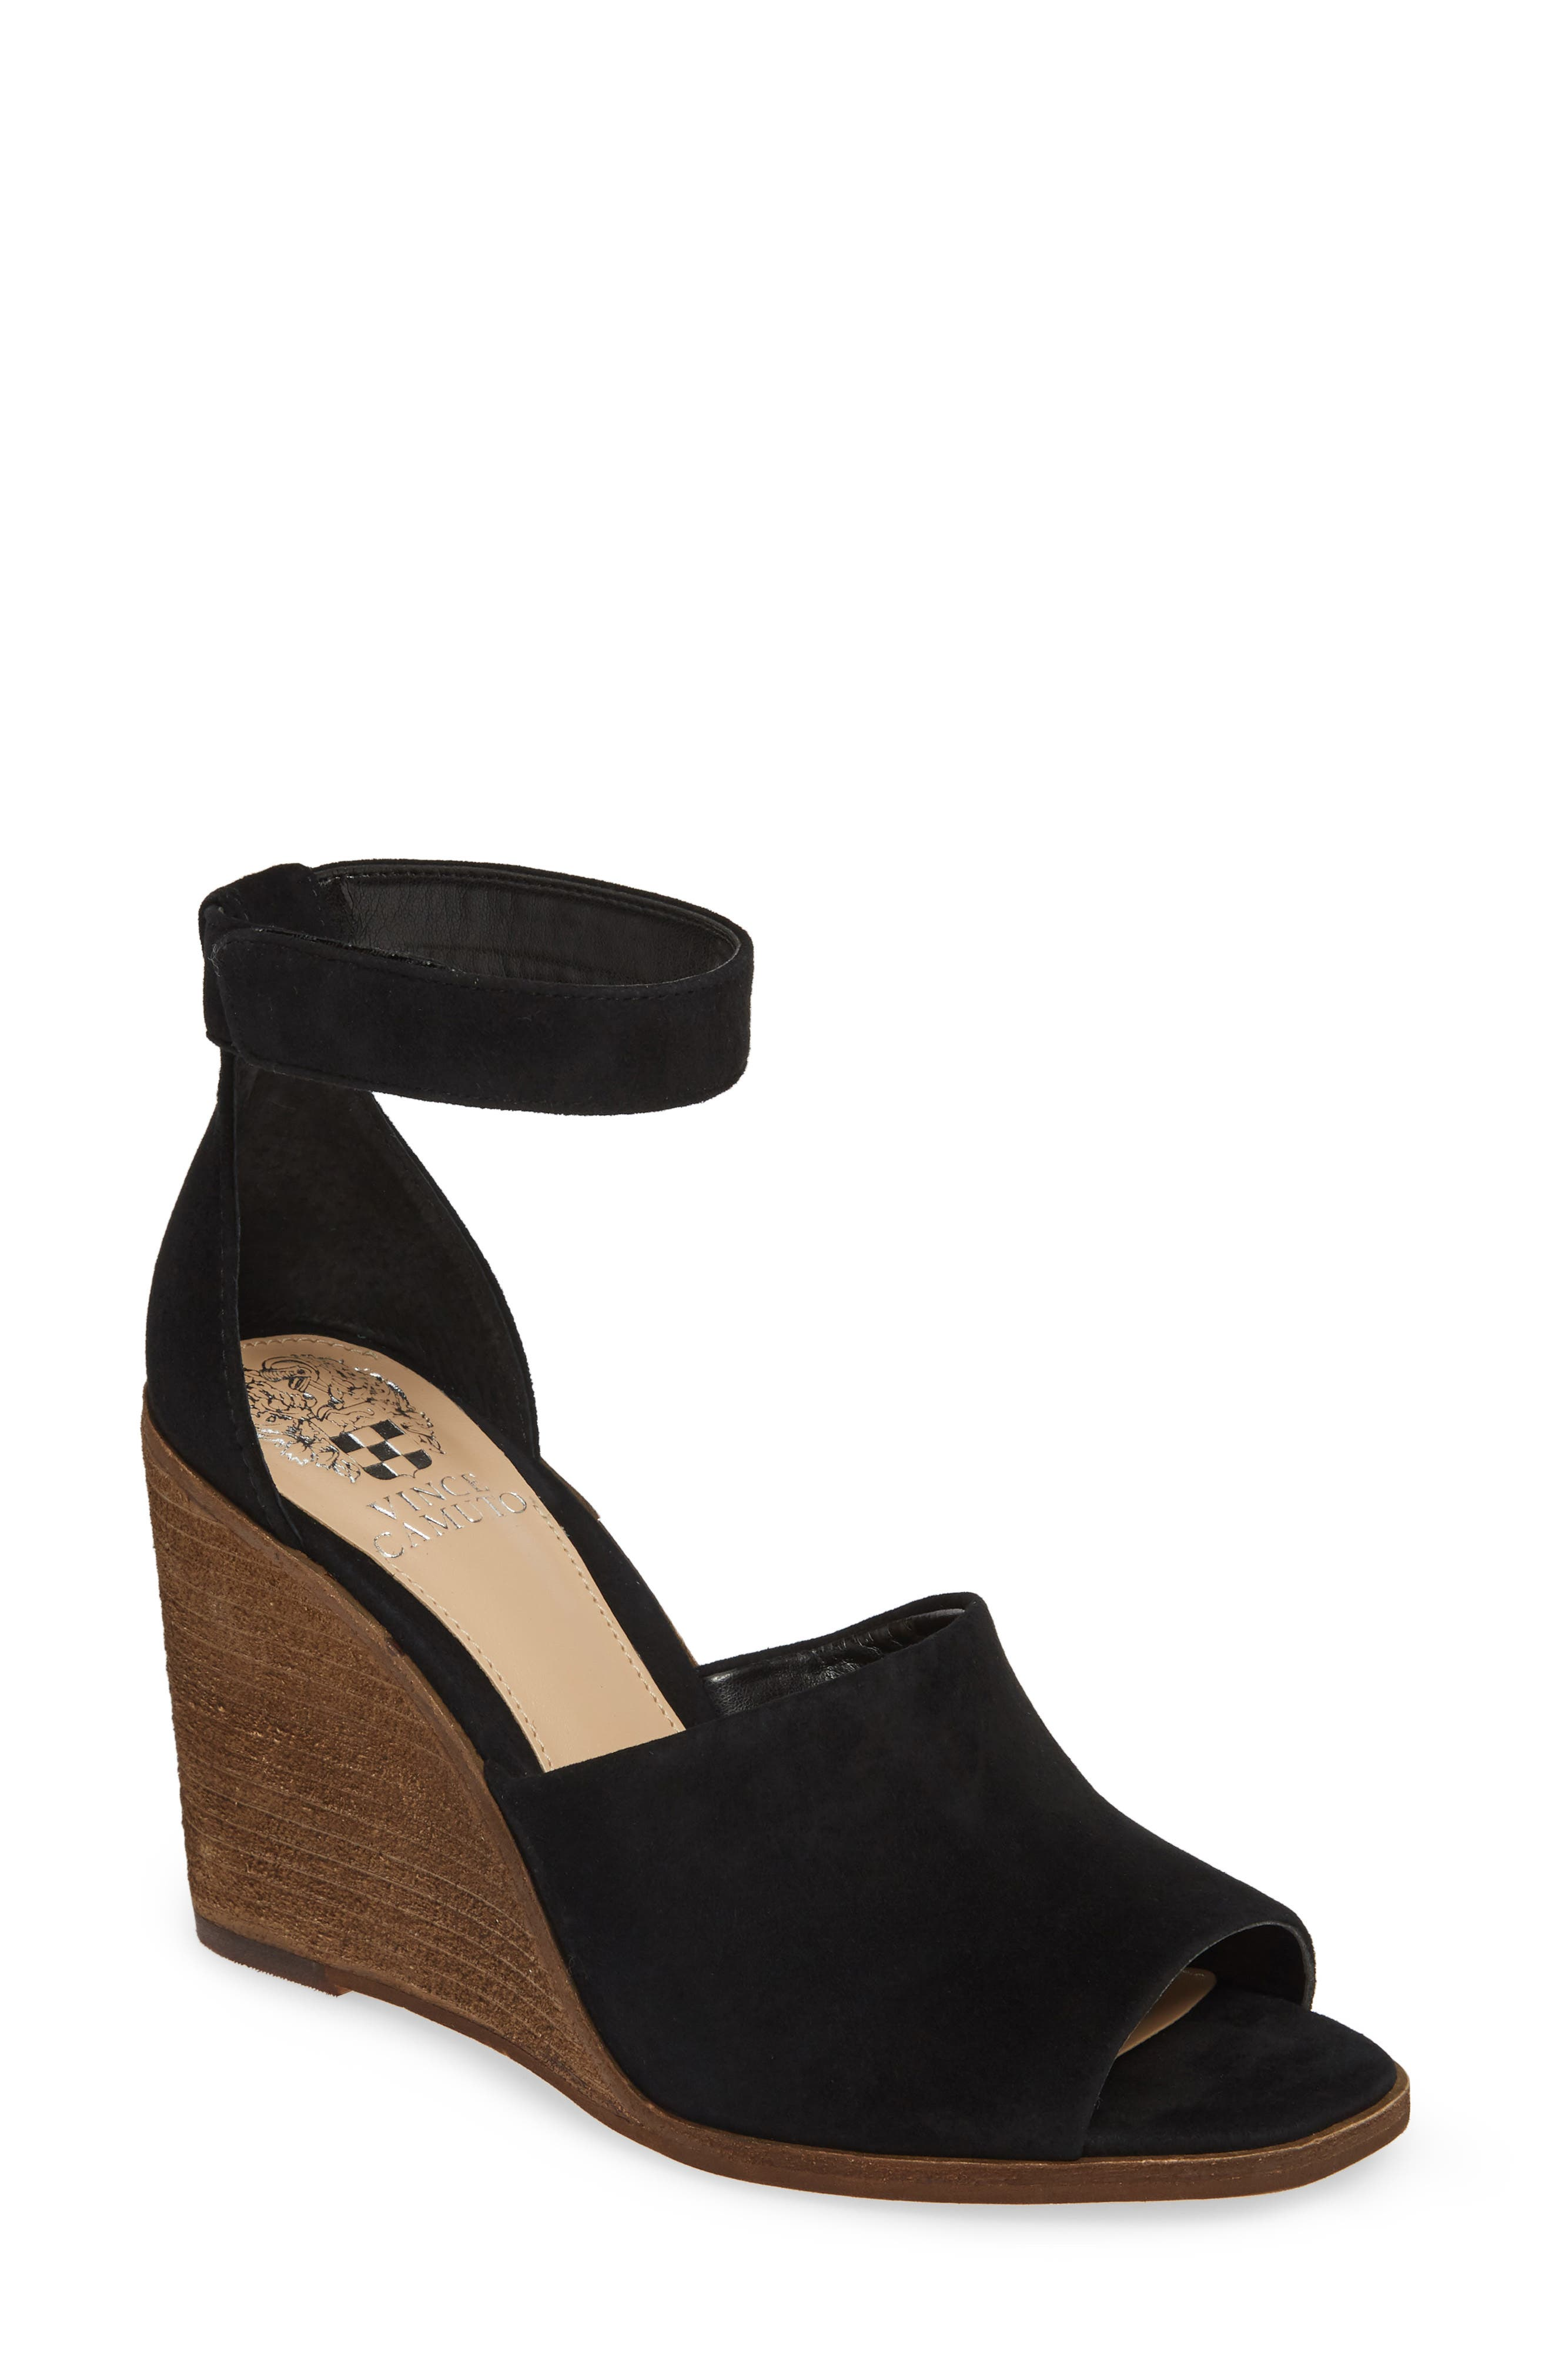 Vince Camuto Deedriana Wedge Sandal- Black